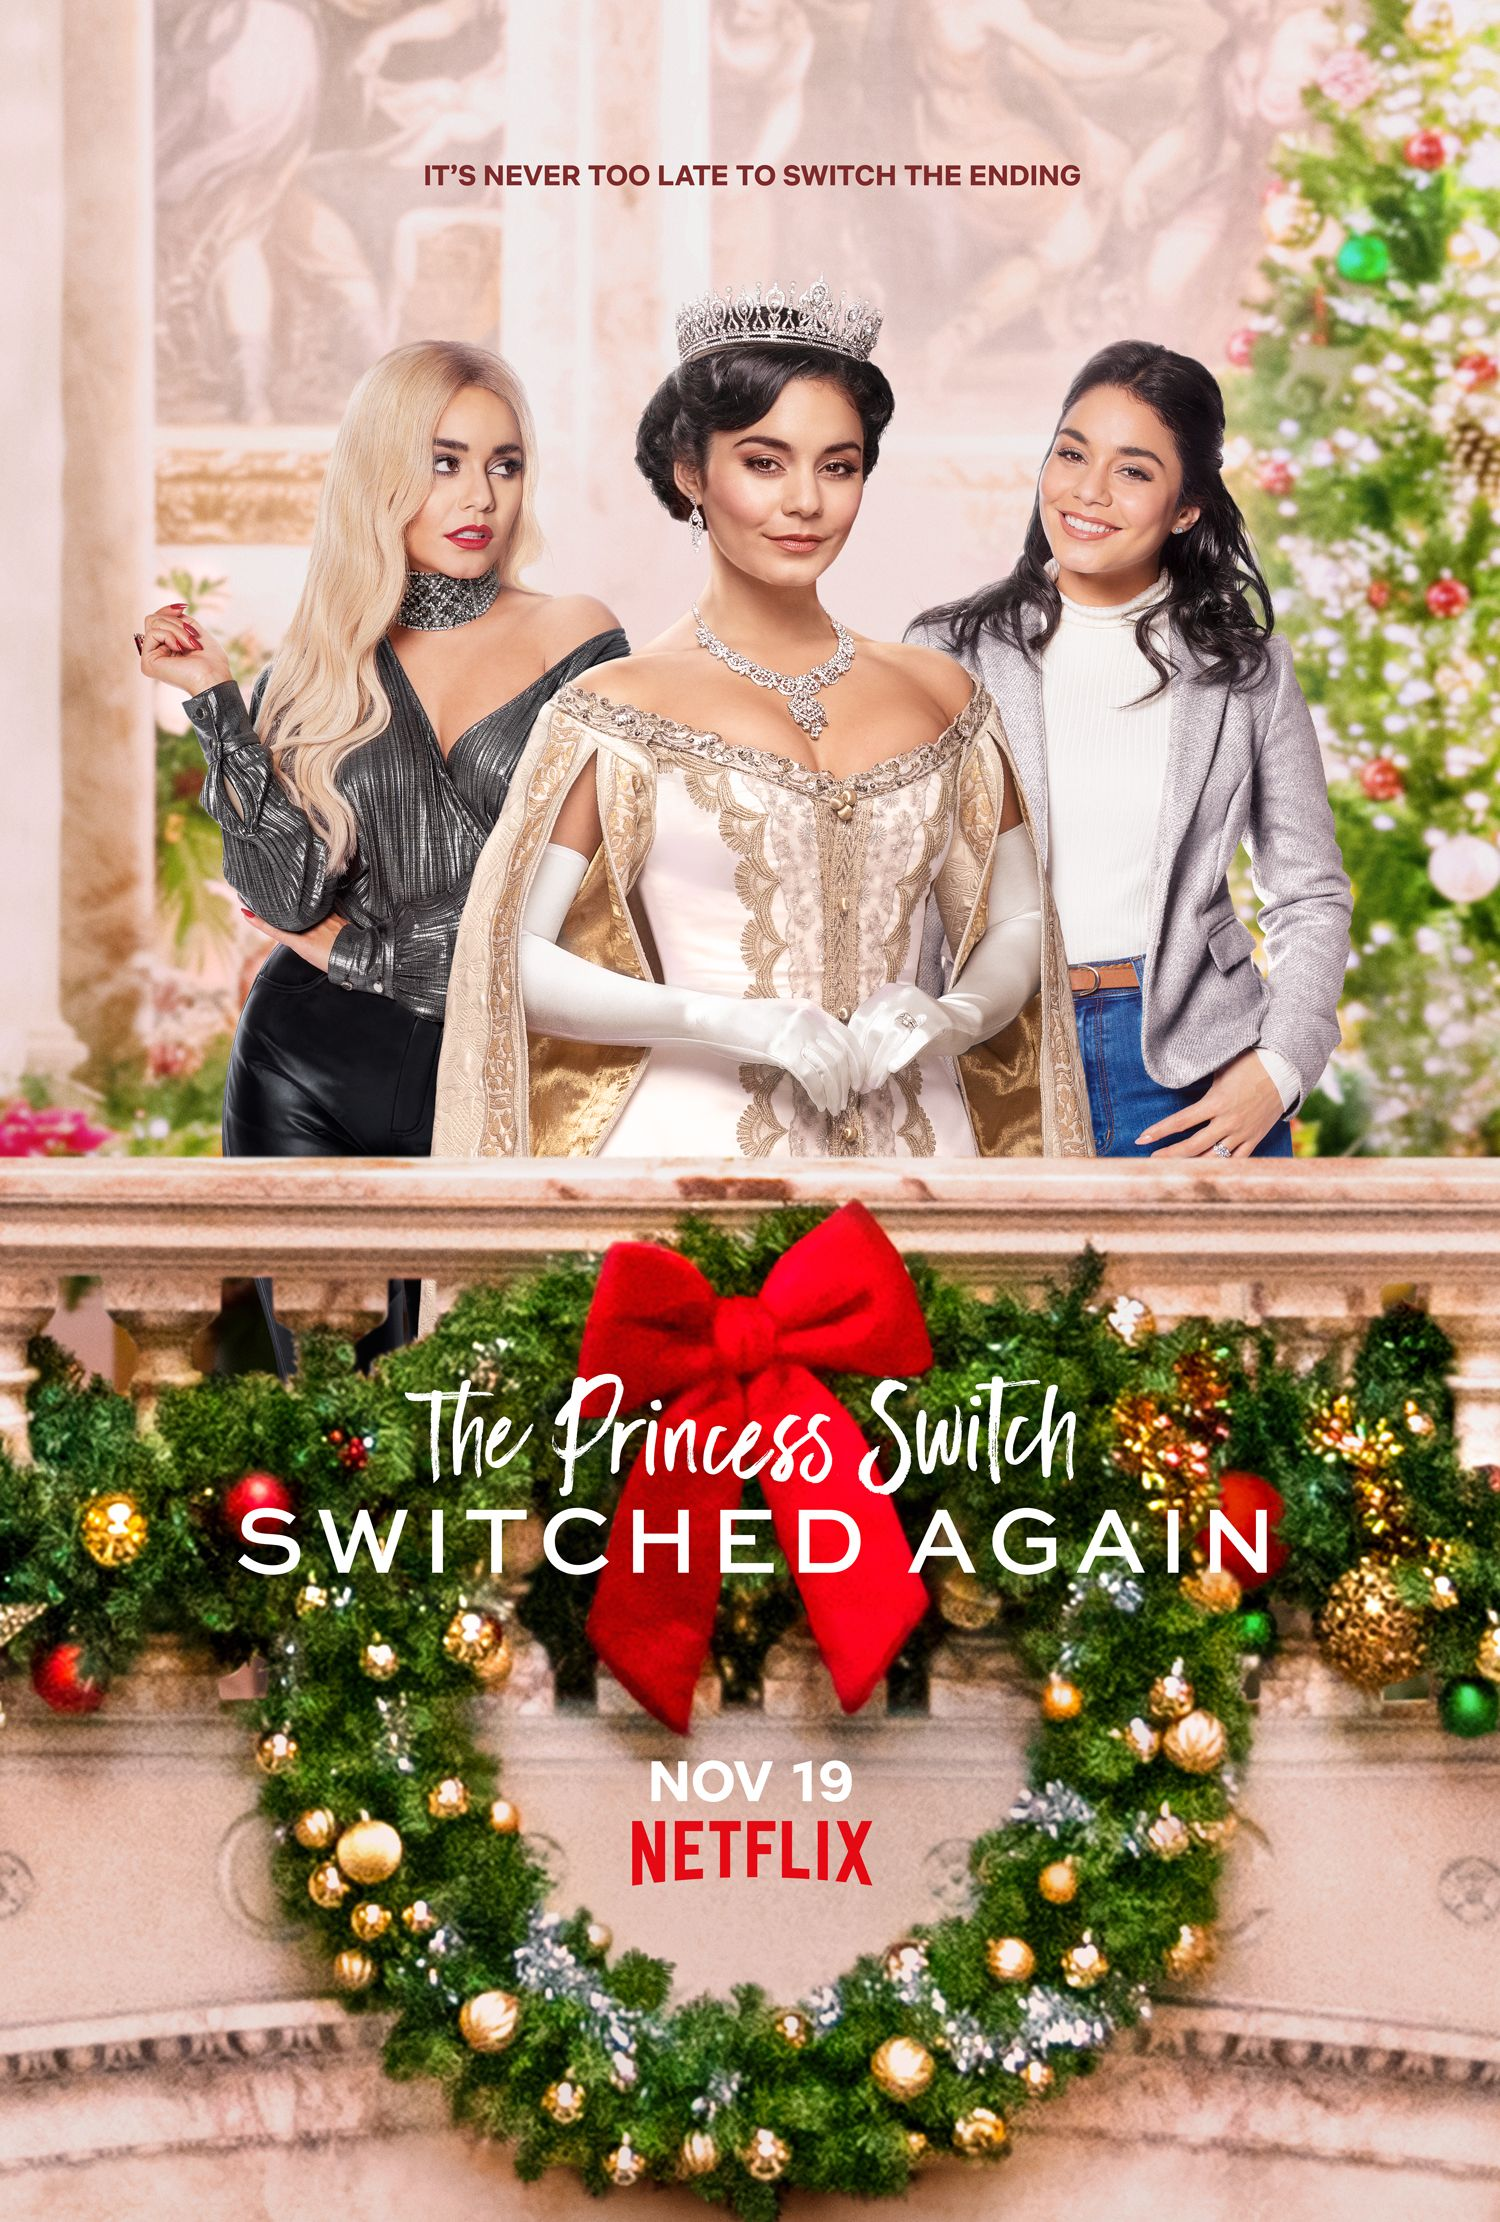 New Movie The Princess Switch Switched Again Starring Vanessa Hudgens In 2020 Netflix Christmas Movies 2020 Movies Movie Posters